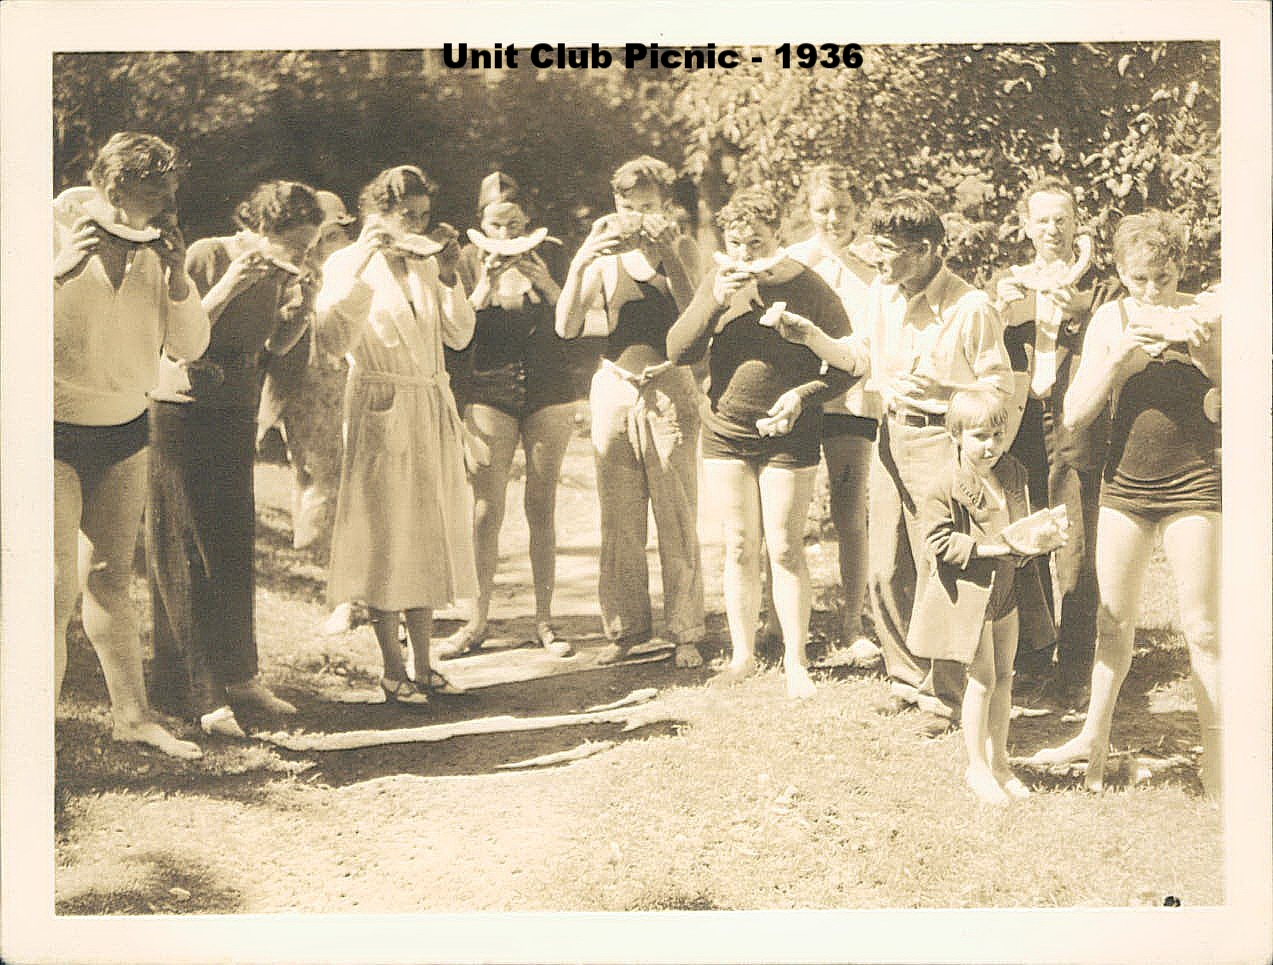 Unit Club Picnic 1936.jpg